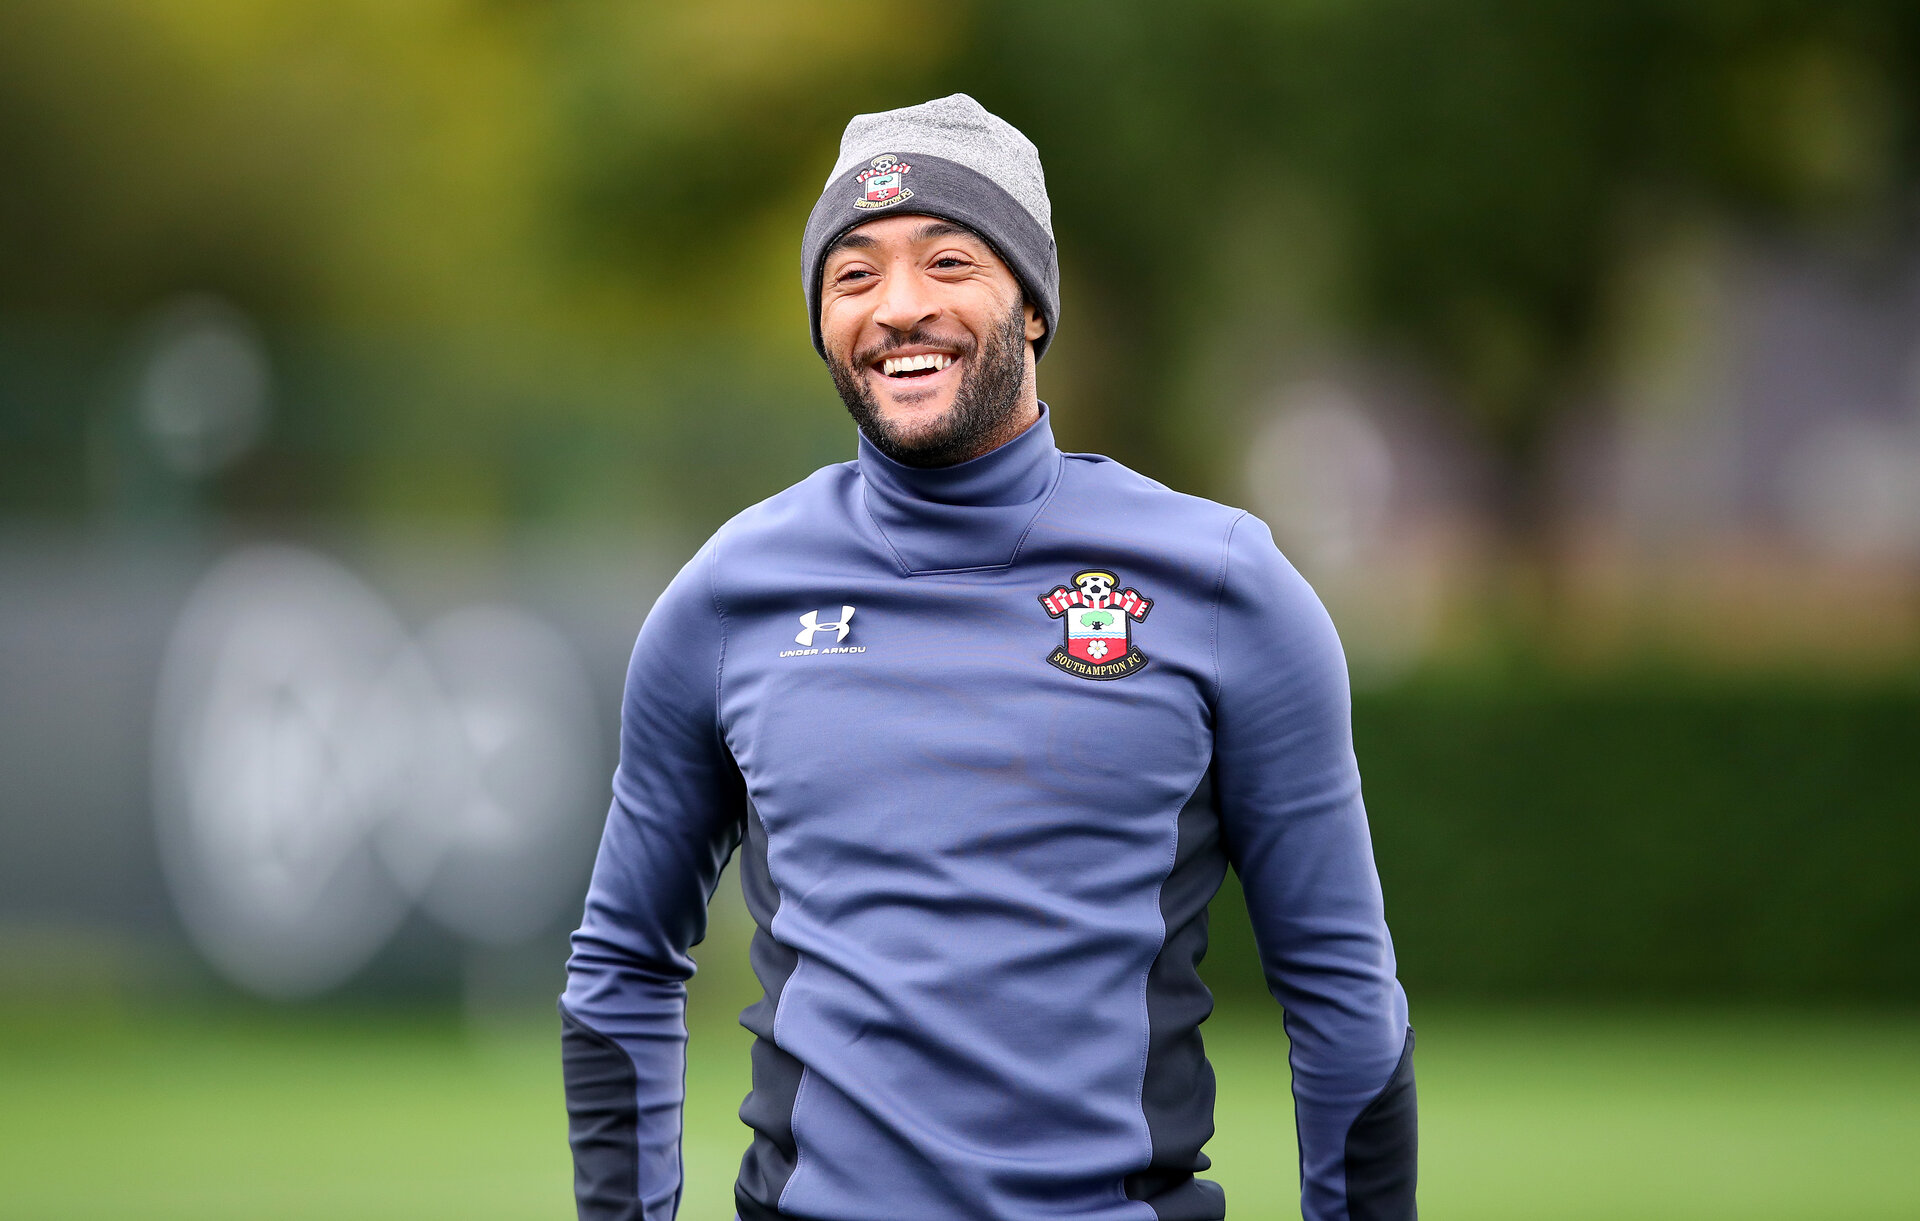 SOUTHAMPTON, ENGLAND - OCTOBER 02: Nathan Redmond during a Southampton FC training session at the Staplewood Campus on October 02, 2020 in Southampton, England. (Photo by Matt Watson/Southampton FC via Getty Images)